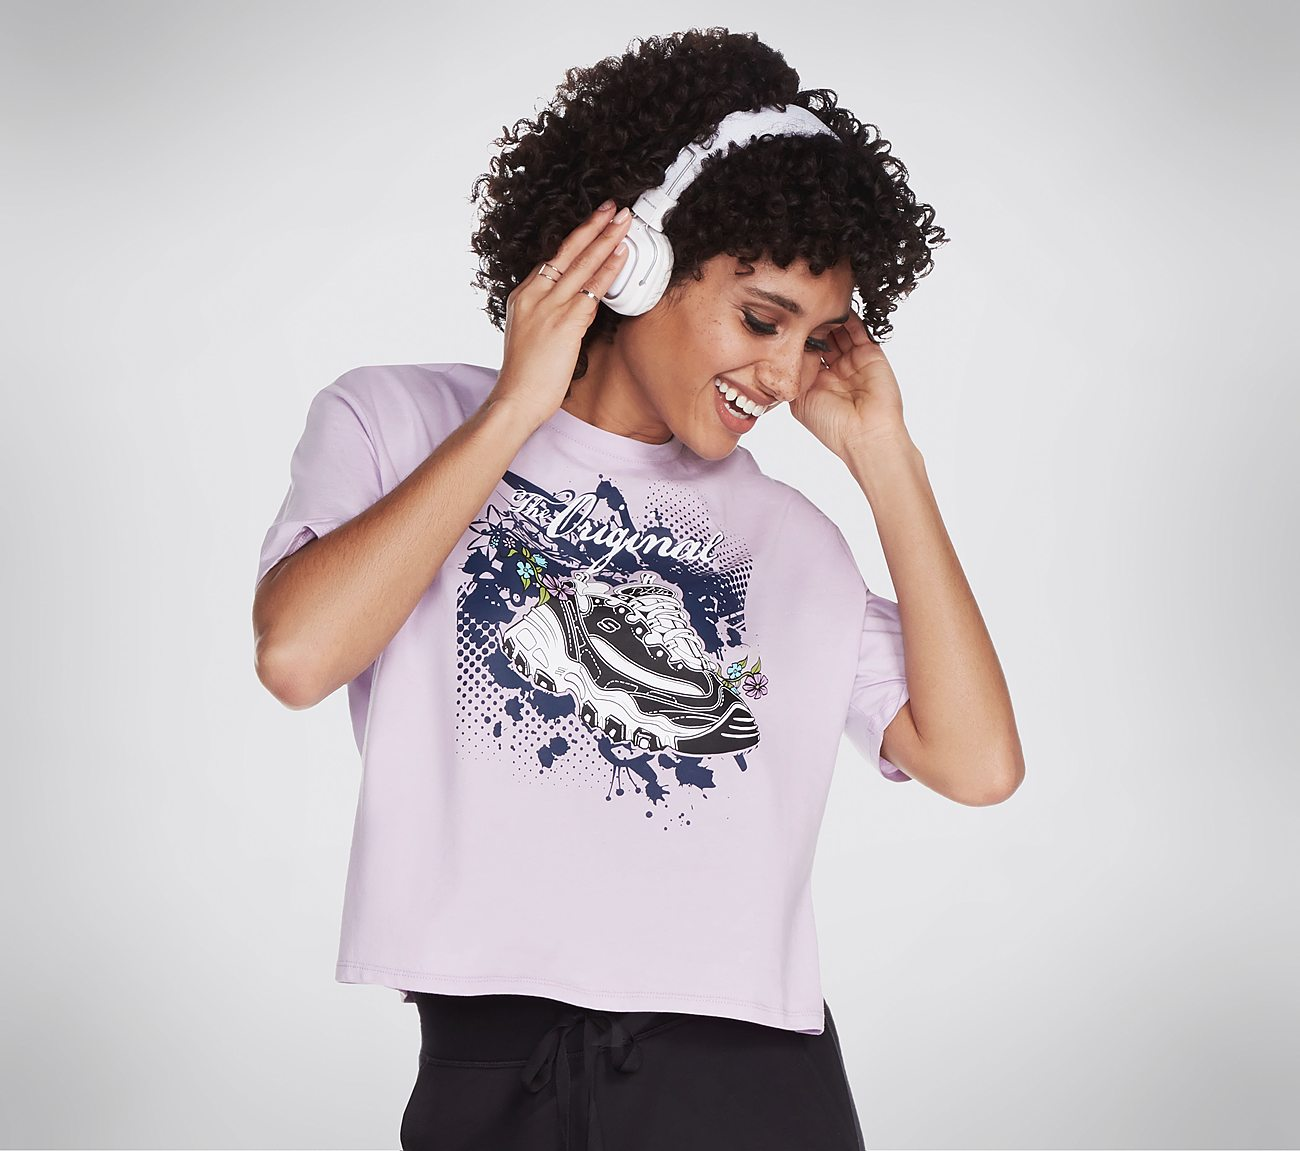 Skechers Apparel Original D'Lites Cropped Tee Shirt